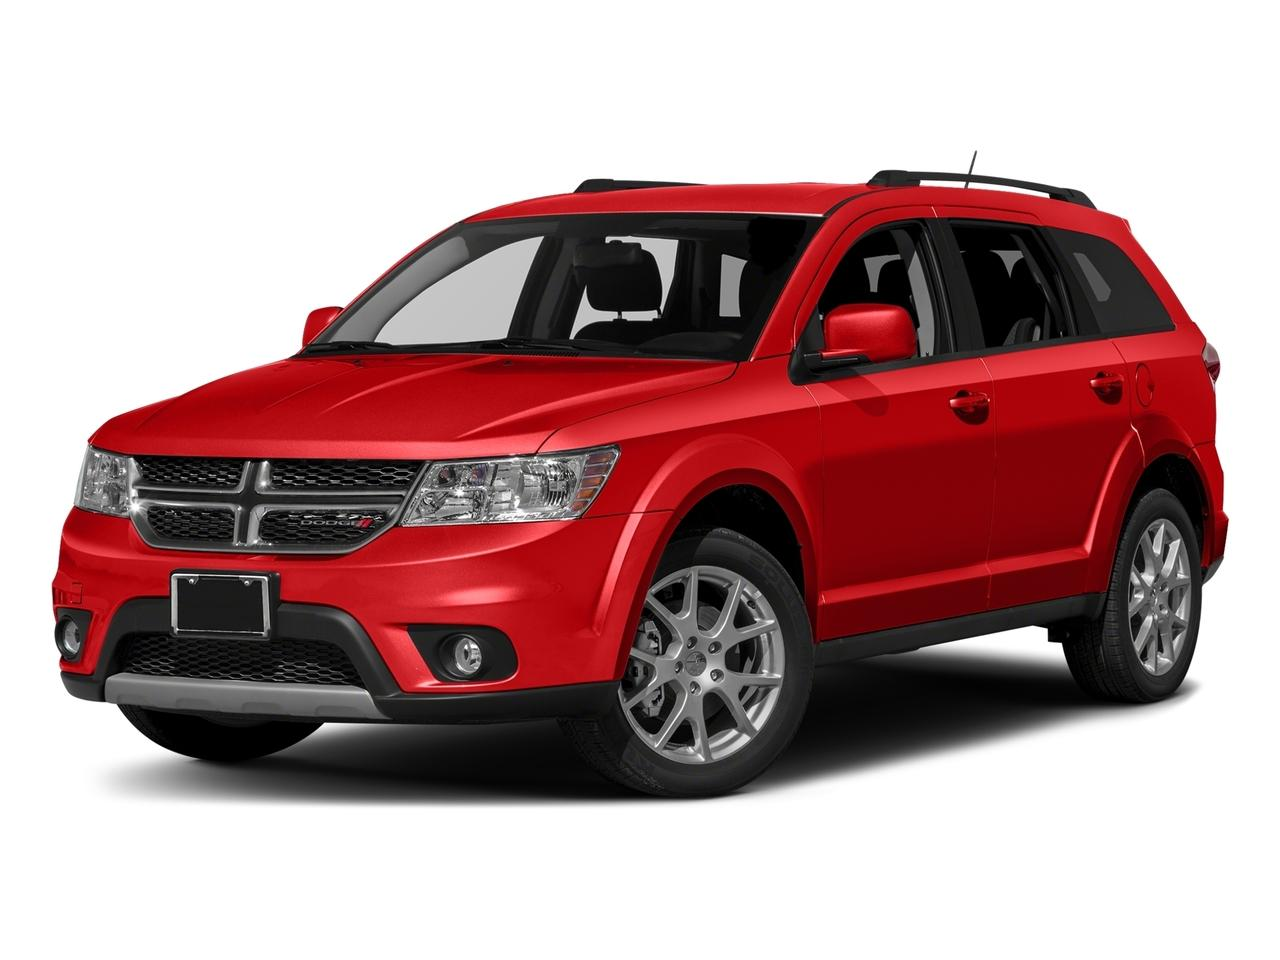 2018 Dodge Journey Vehicle Photo in Corpus Christi, TX 78410-4506